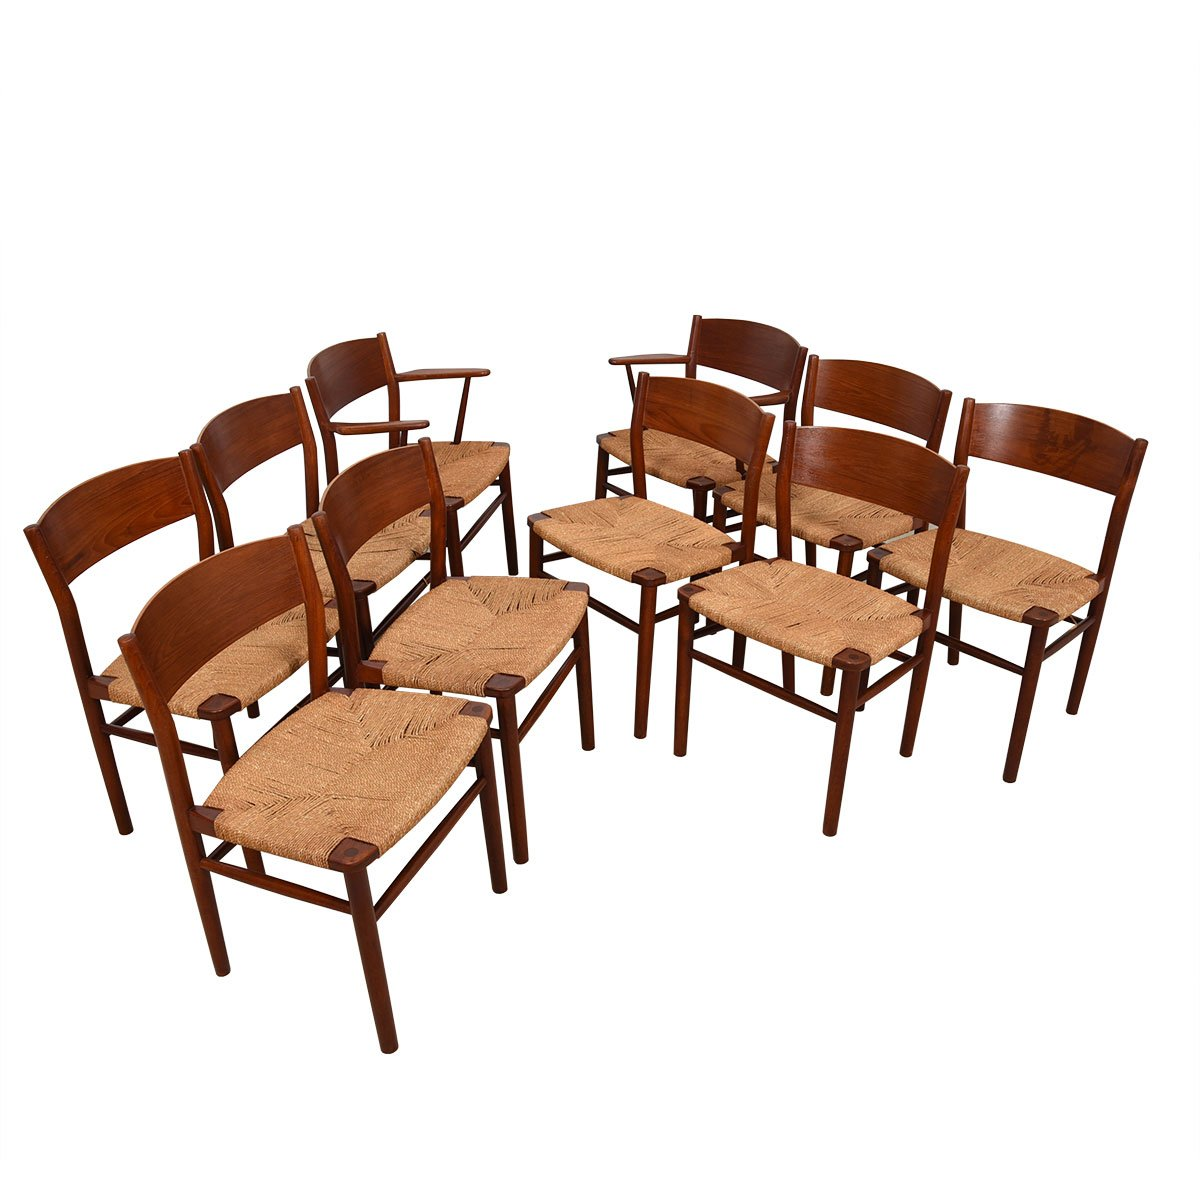 Borge Mogensen Set of 10 (2 Arm + 8 Side) Danish Teak Dining Chairs